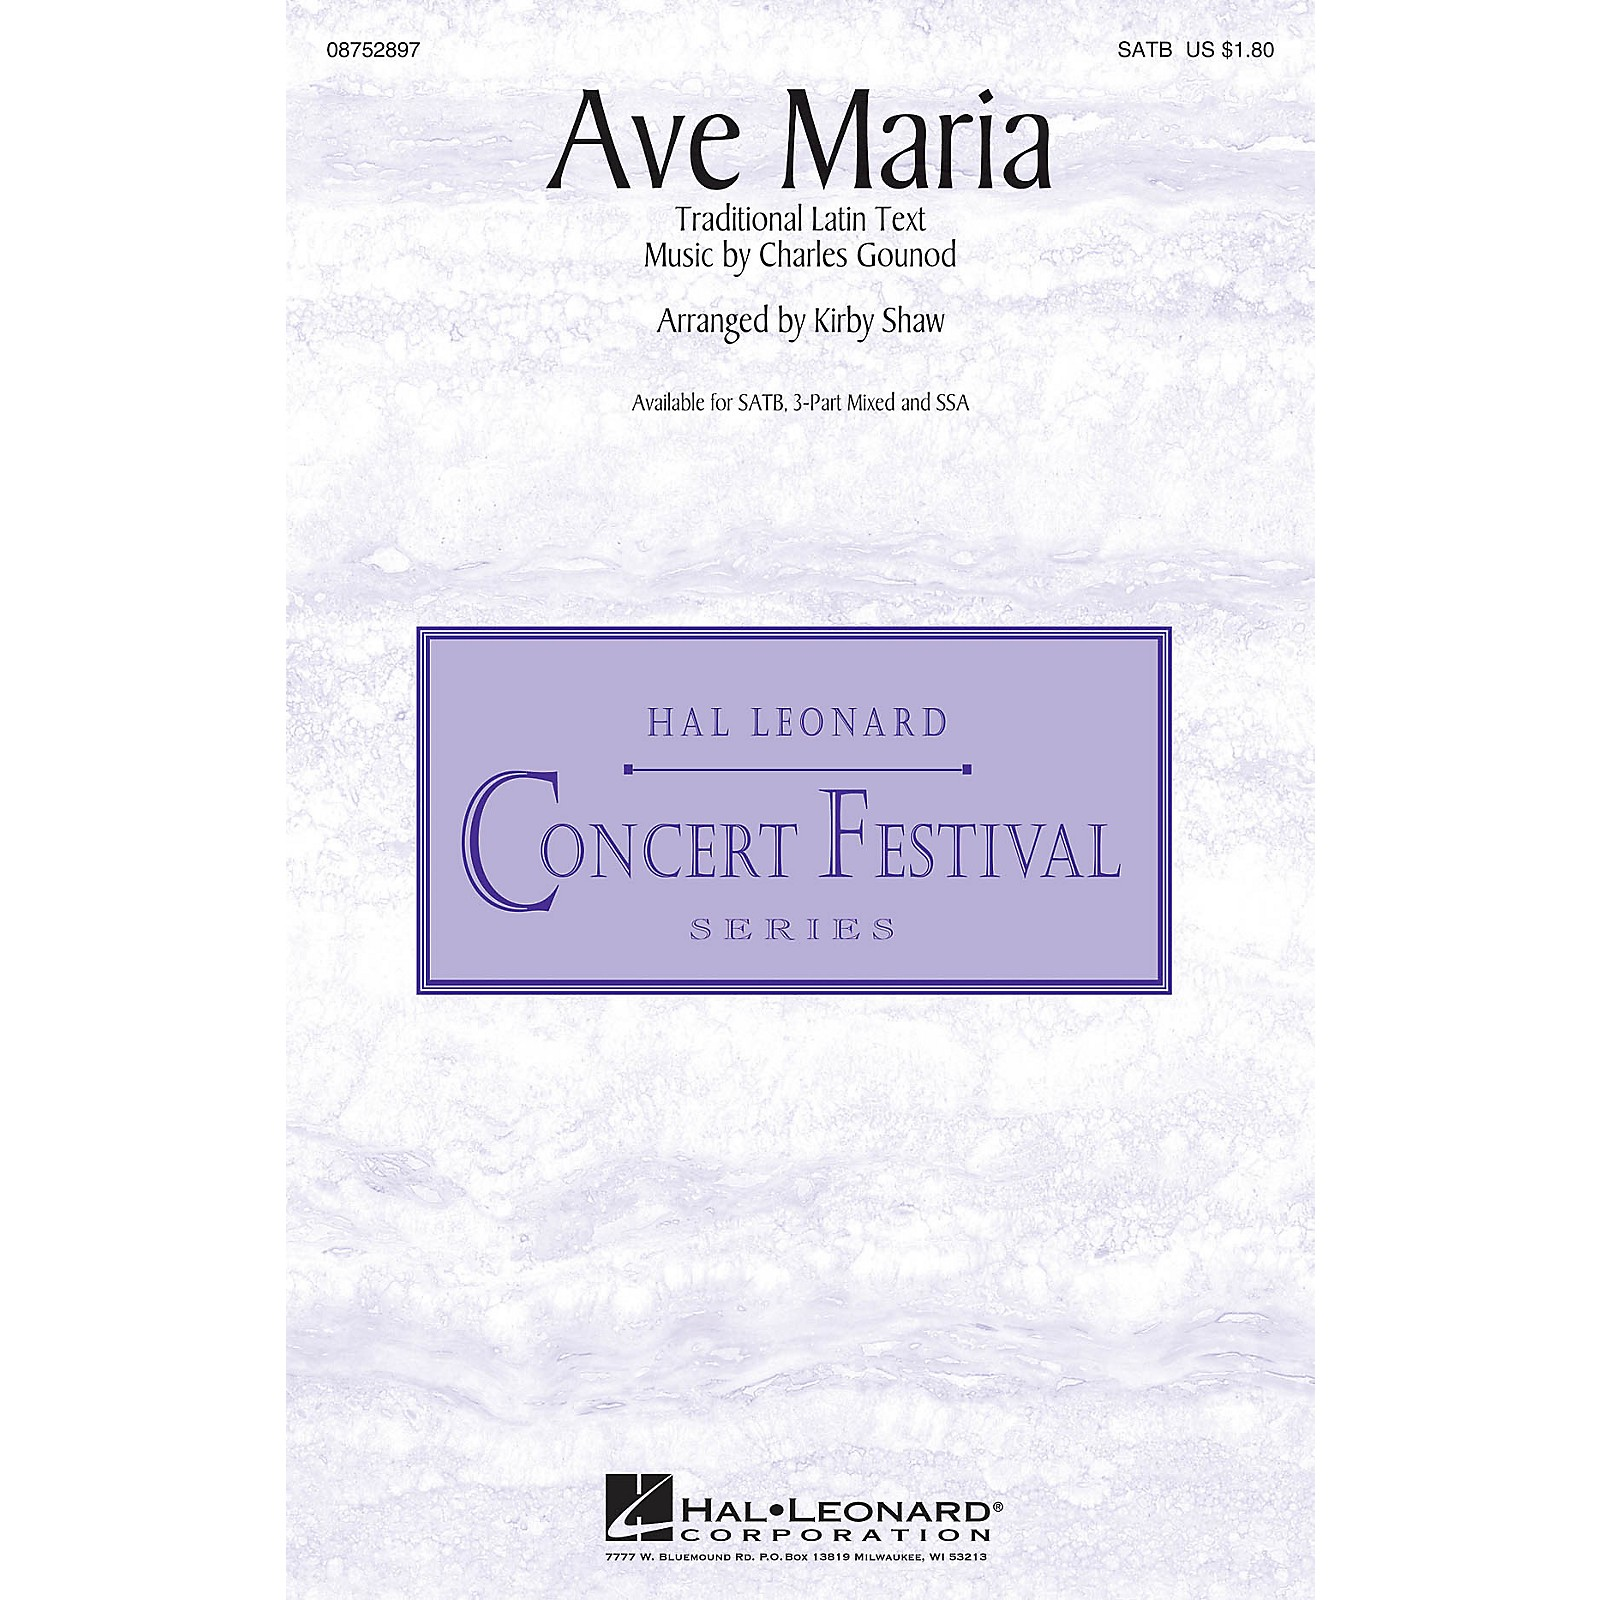 Hal Leonard Ave Maria 3-Part Mixed Arranged by Kirby Shaw